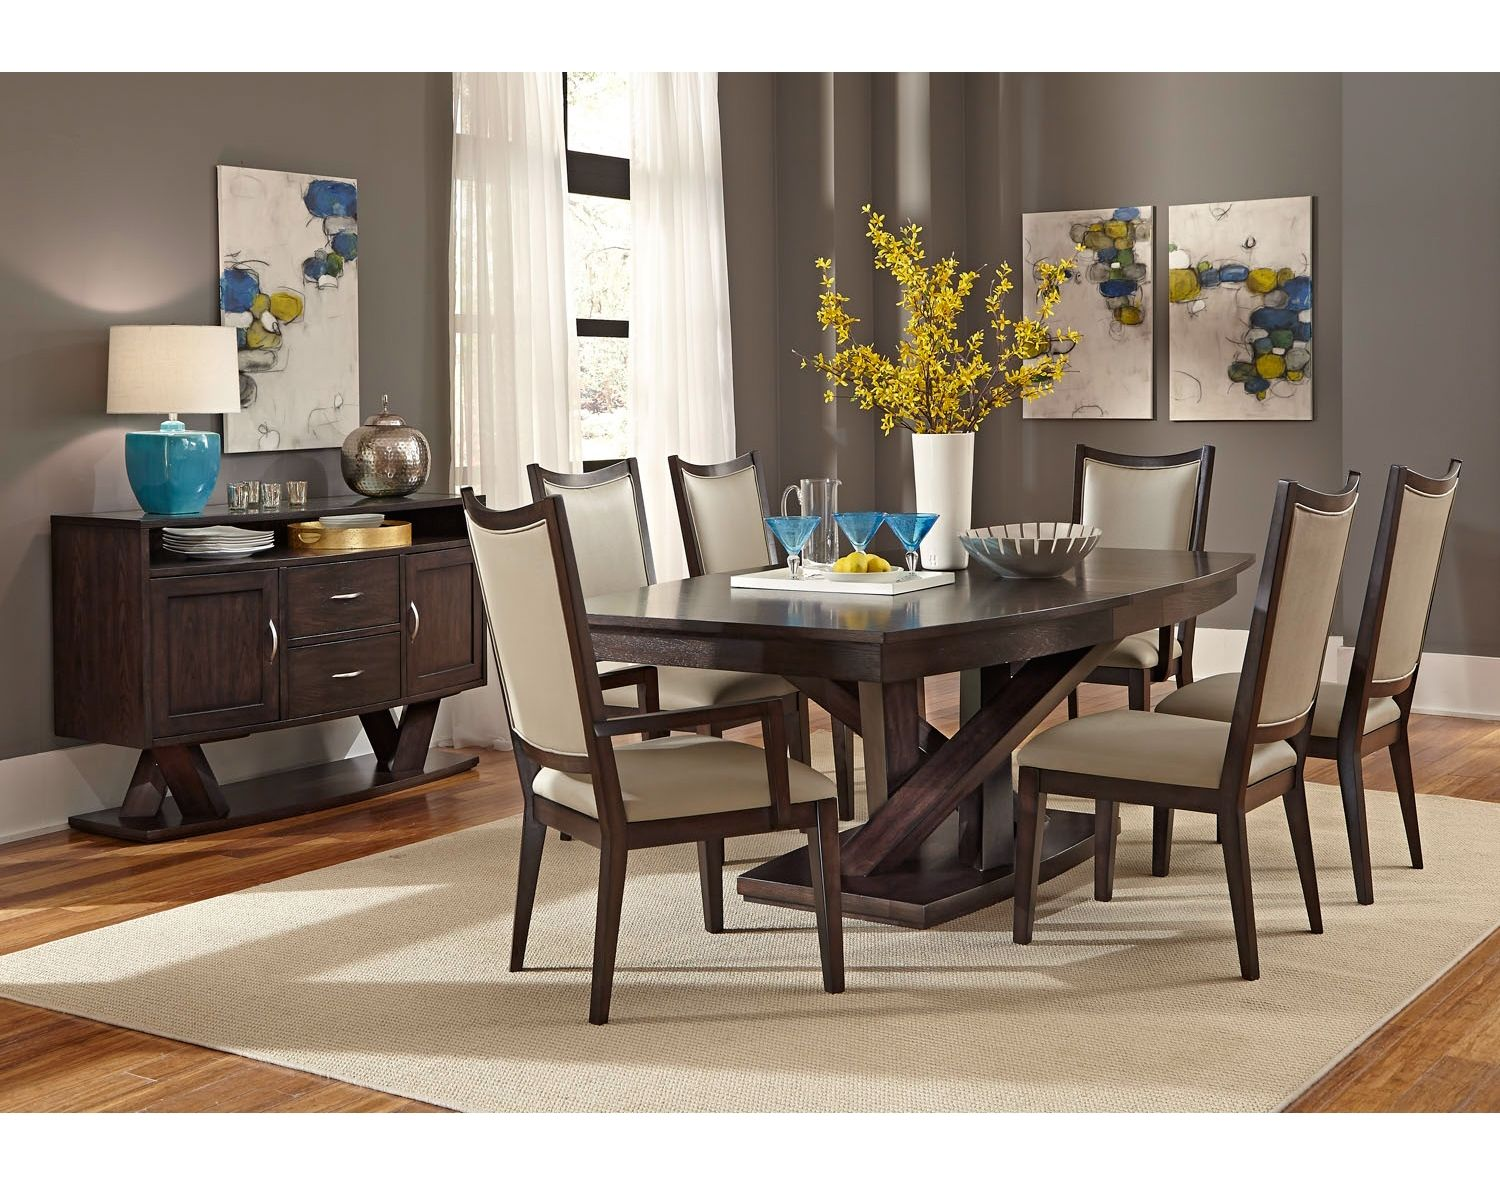 Addison Dining Room Collection Leon S Dining Room Contemporary